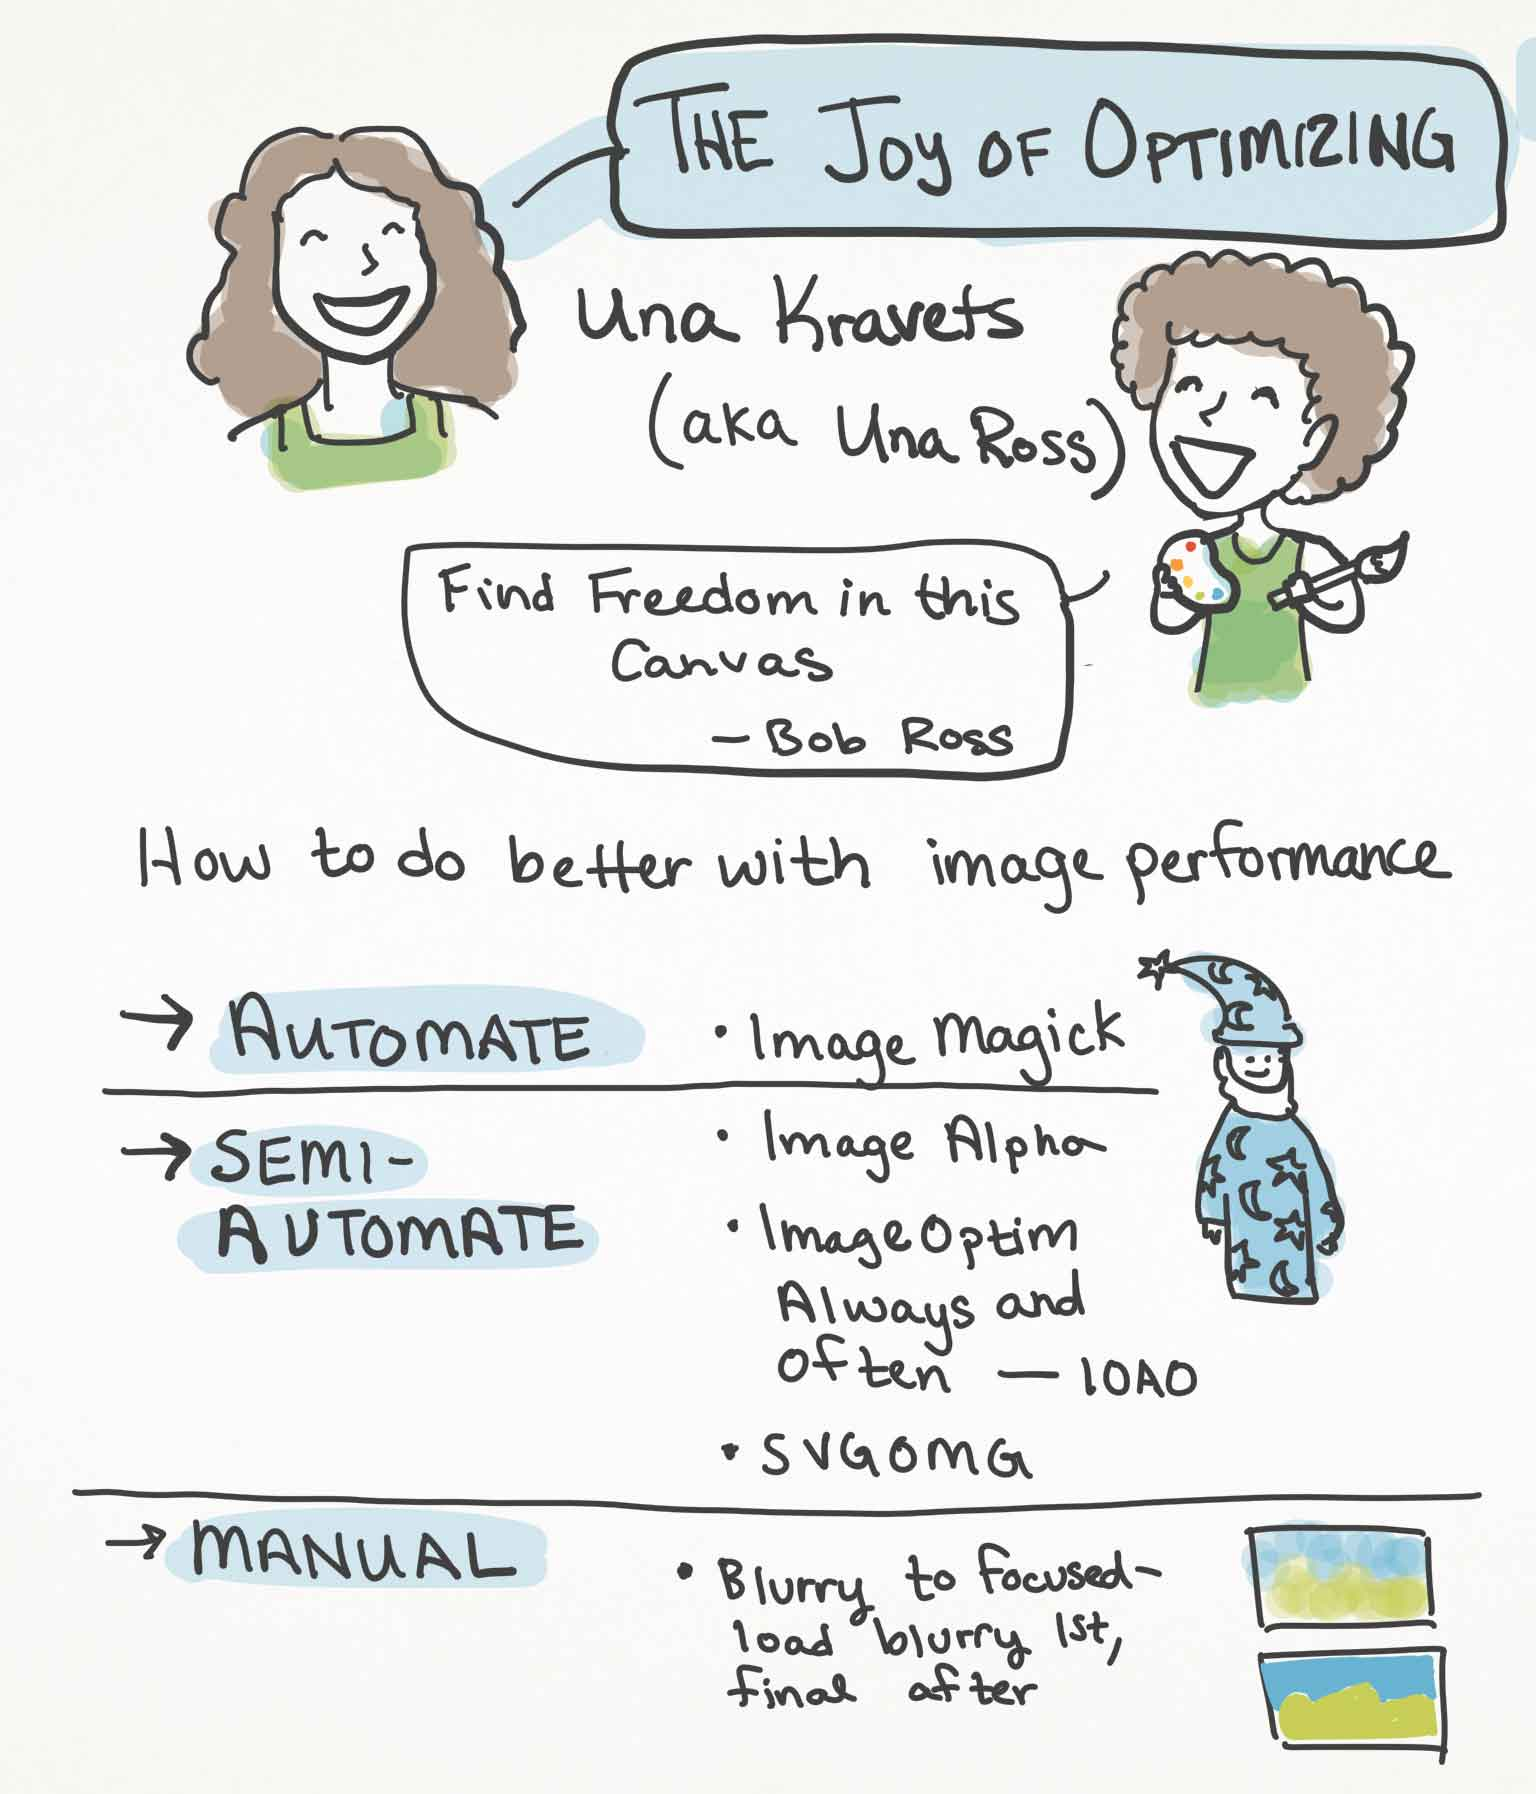 Sketchnotes page 1 from Una Kravets's talk